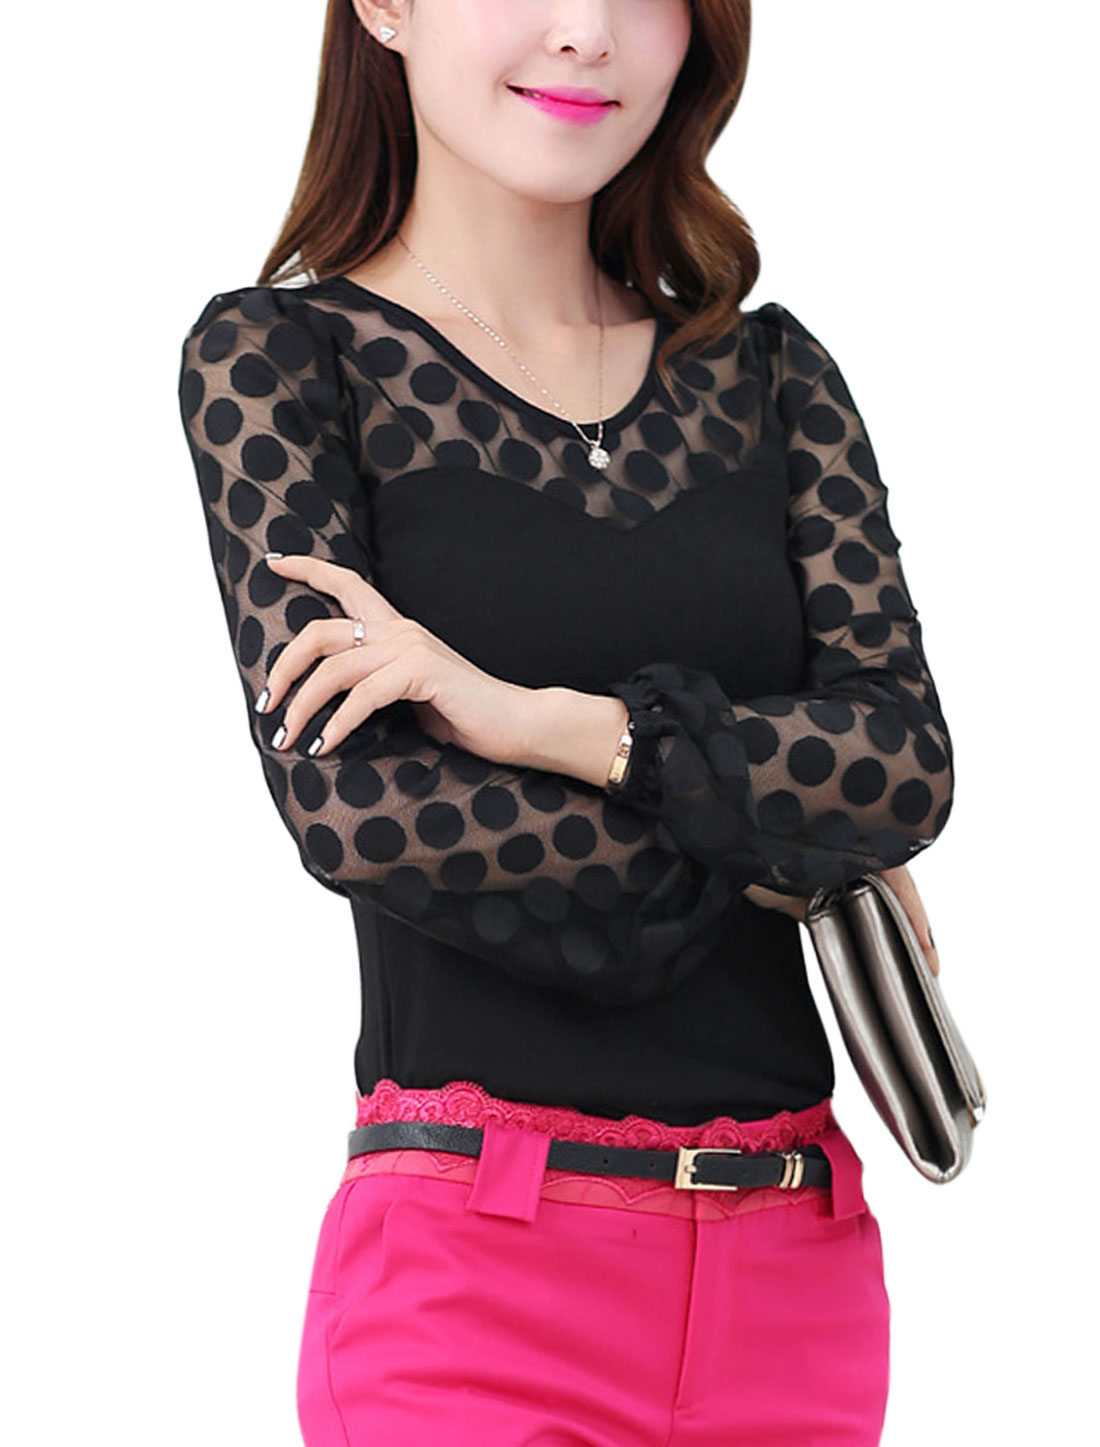 Lady Lace Panel Dots Design Detail Round Neck Slim Fit Top Black S